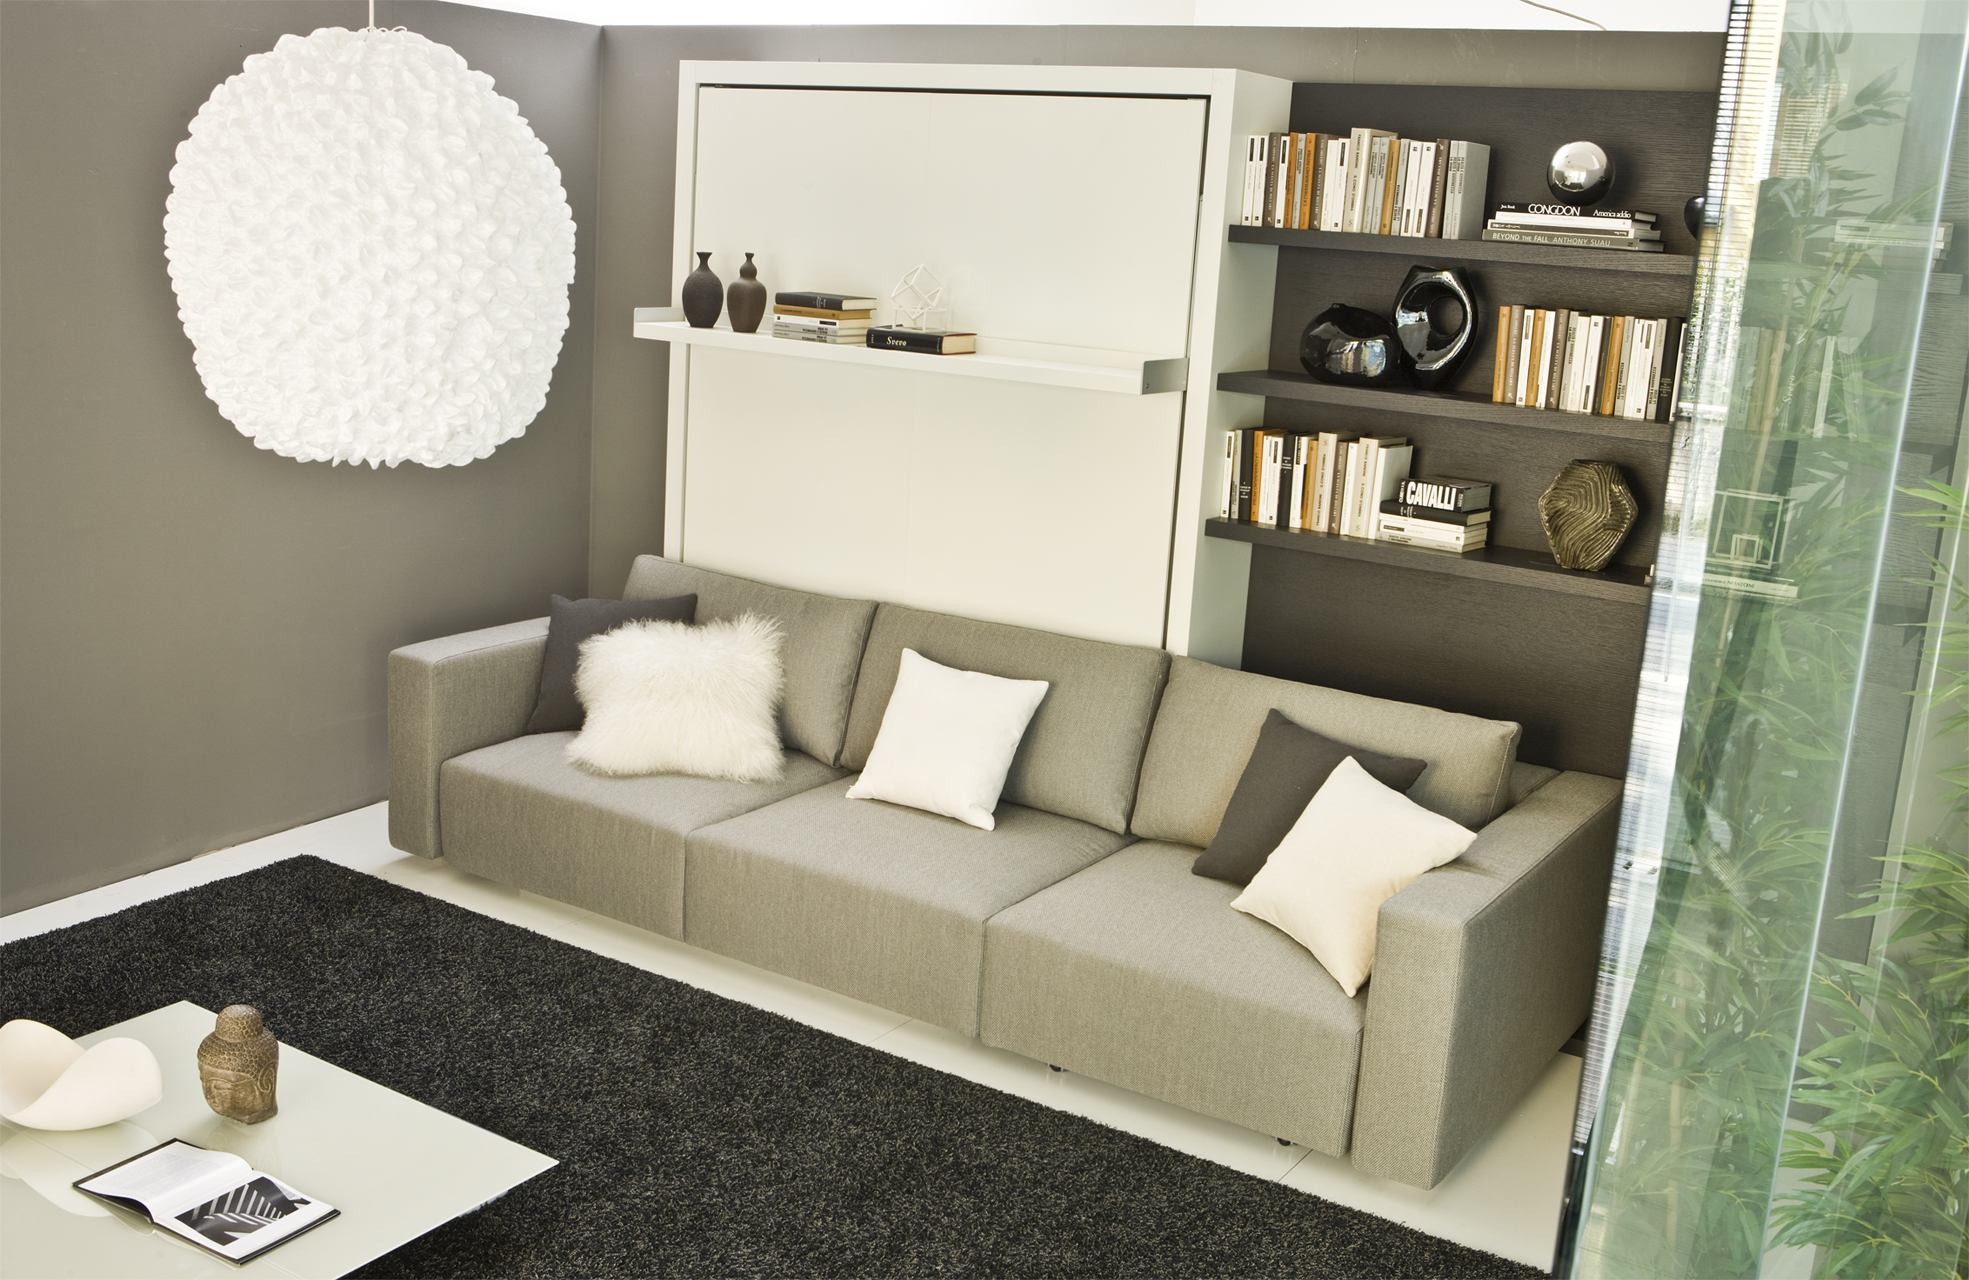 The Atoll Swing Sofa Fold Away Wall Bed Unit Many